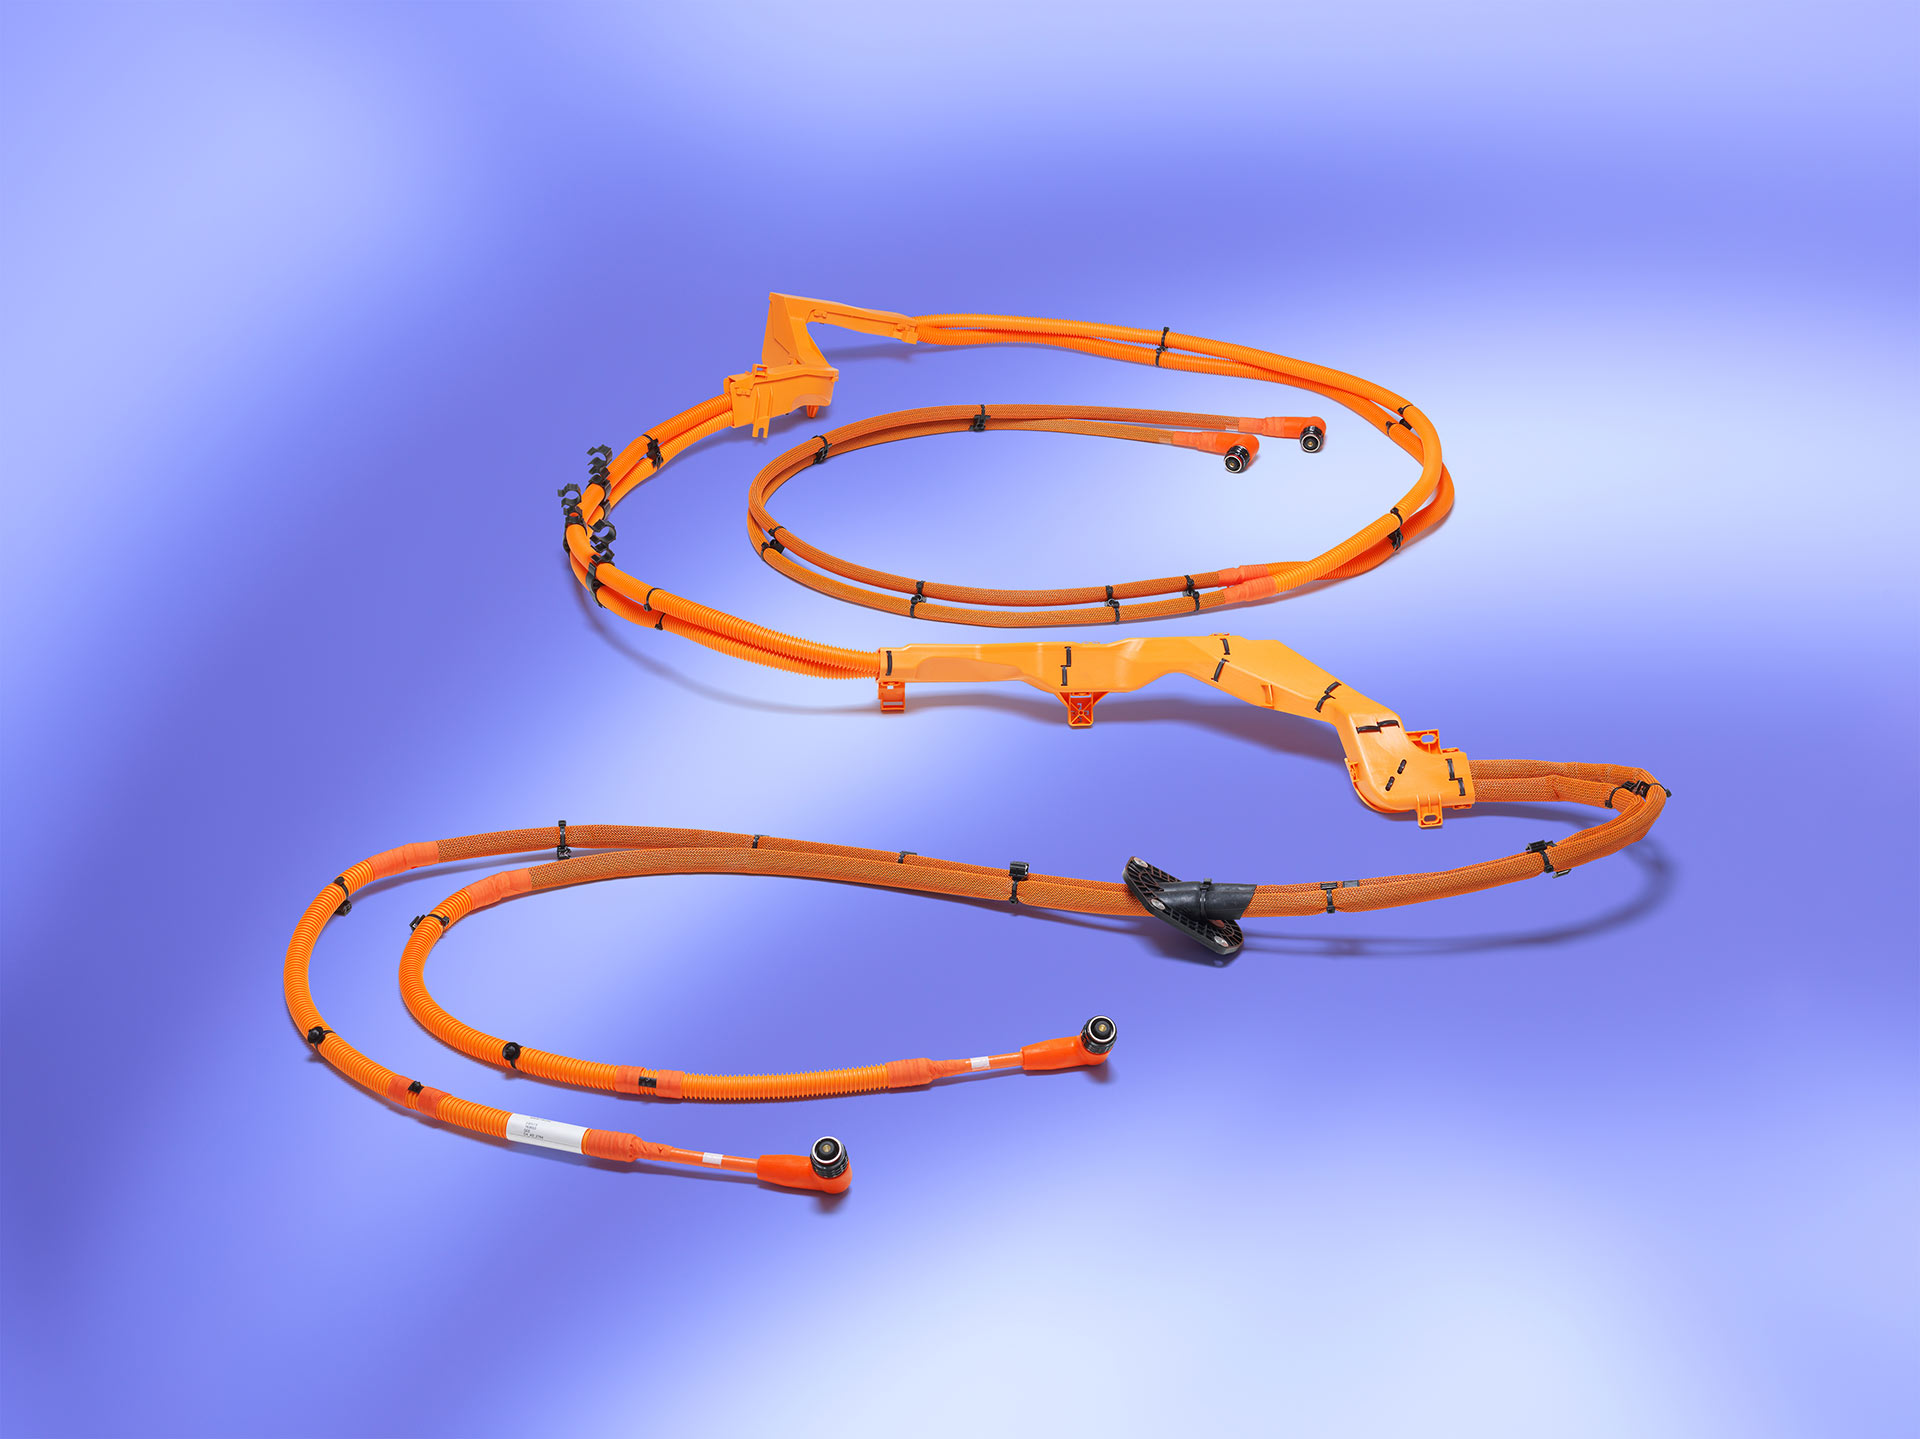 Hv Harnesses Gebauer Griller Wiring Harness Suppliers India Applications